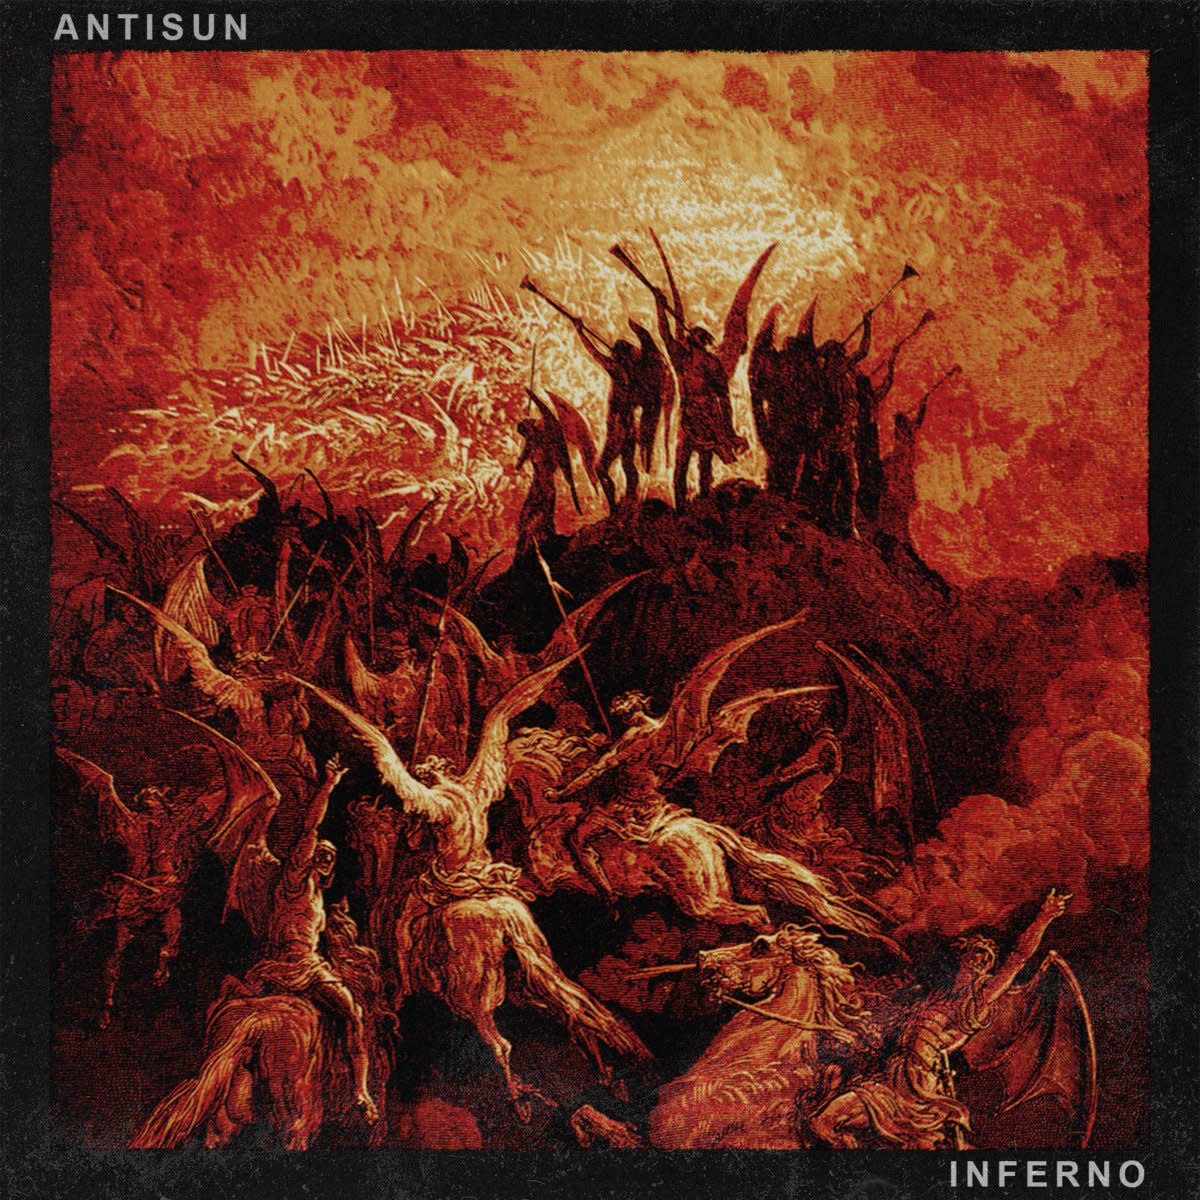 darksynth-single-review-inferno-by-antisun